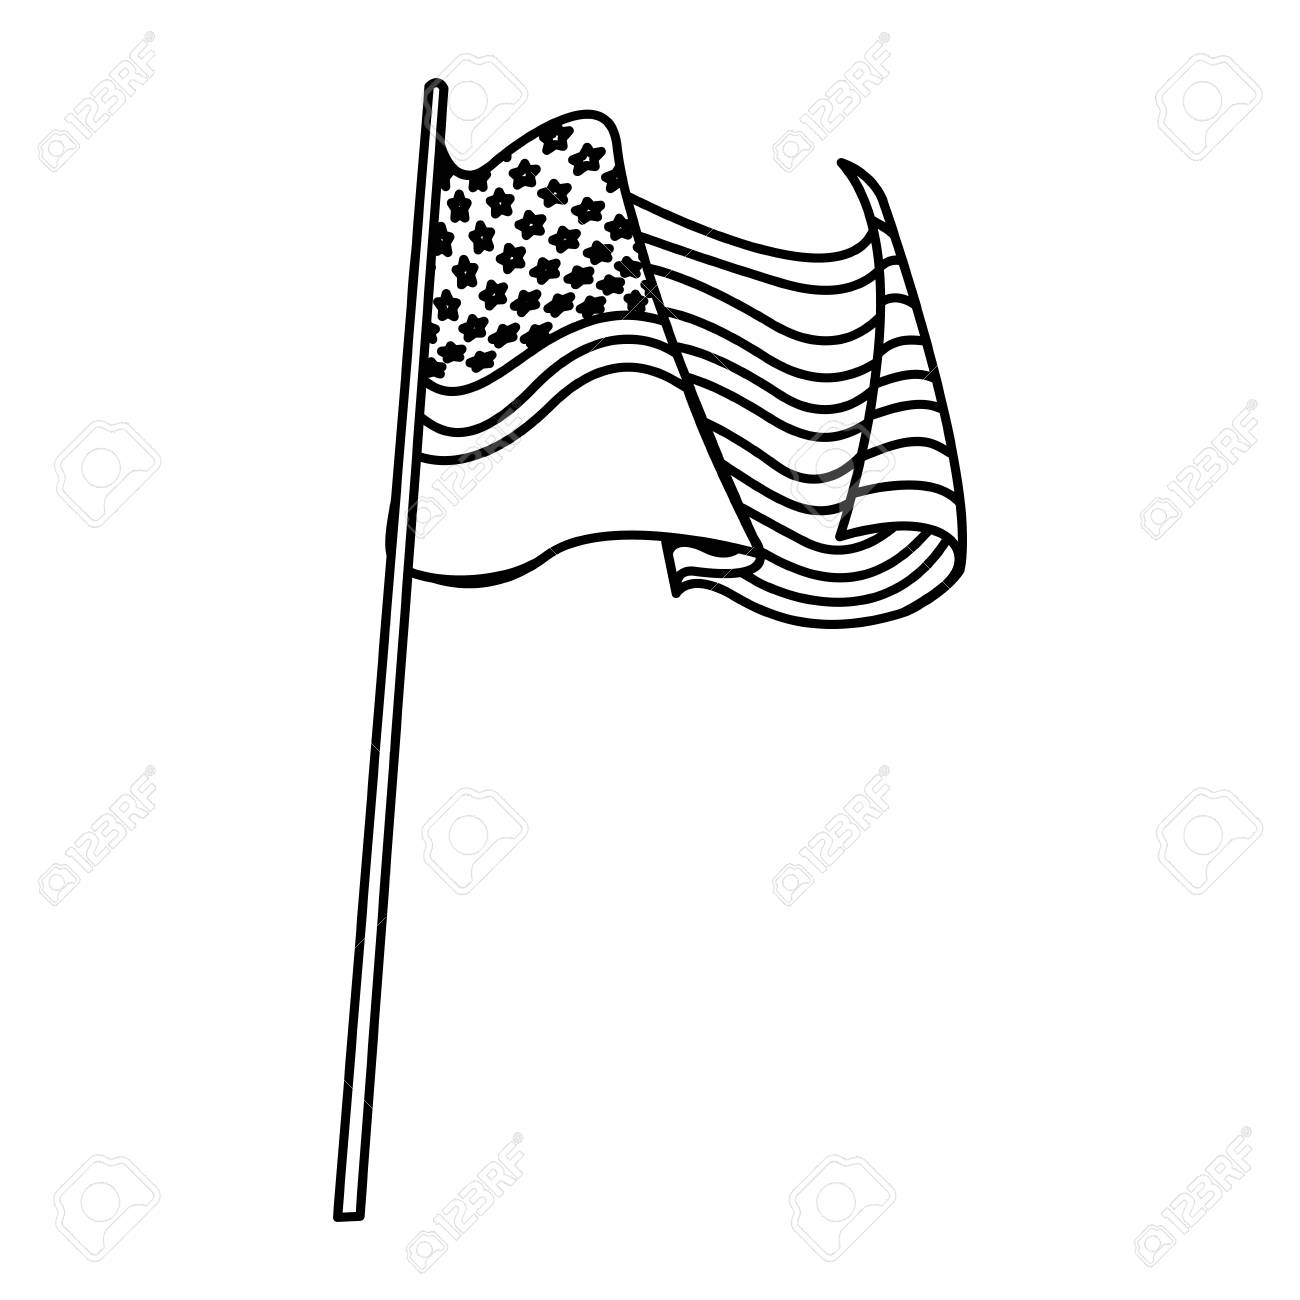 United States Of America Flag Waving Pole Line Vector Illustration